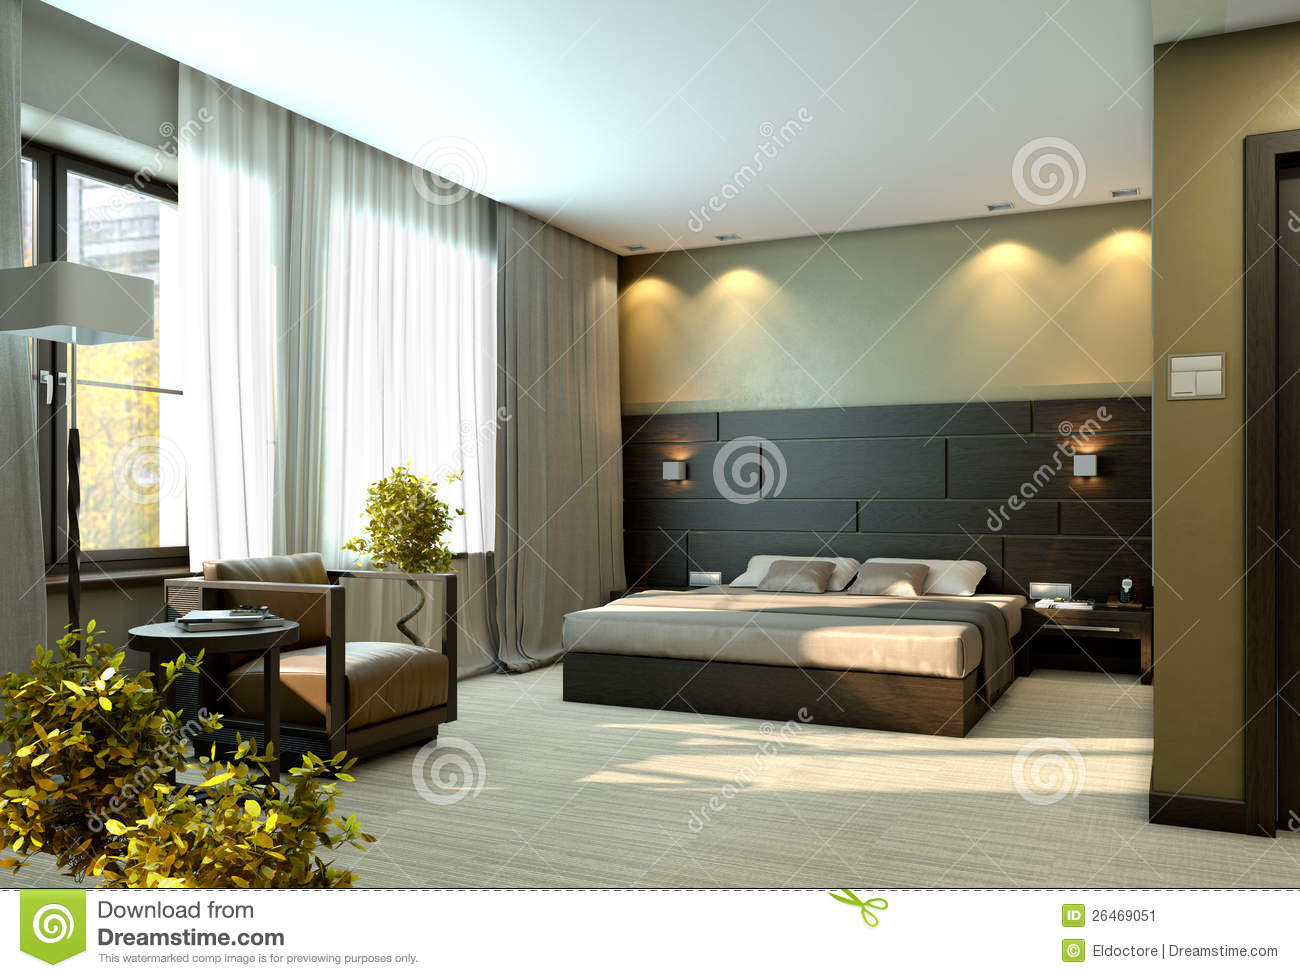 chambre coucher beige de luxe moderne image stock image 26469051. Black Bedroom Furniture Sets. Home Design Ideas